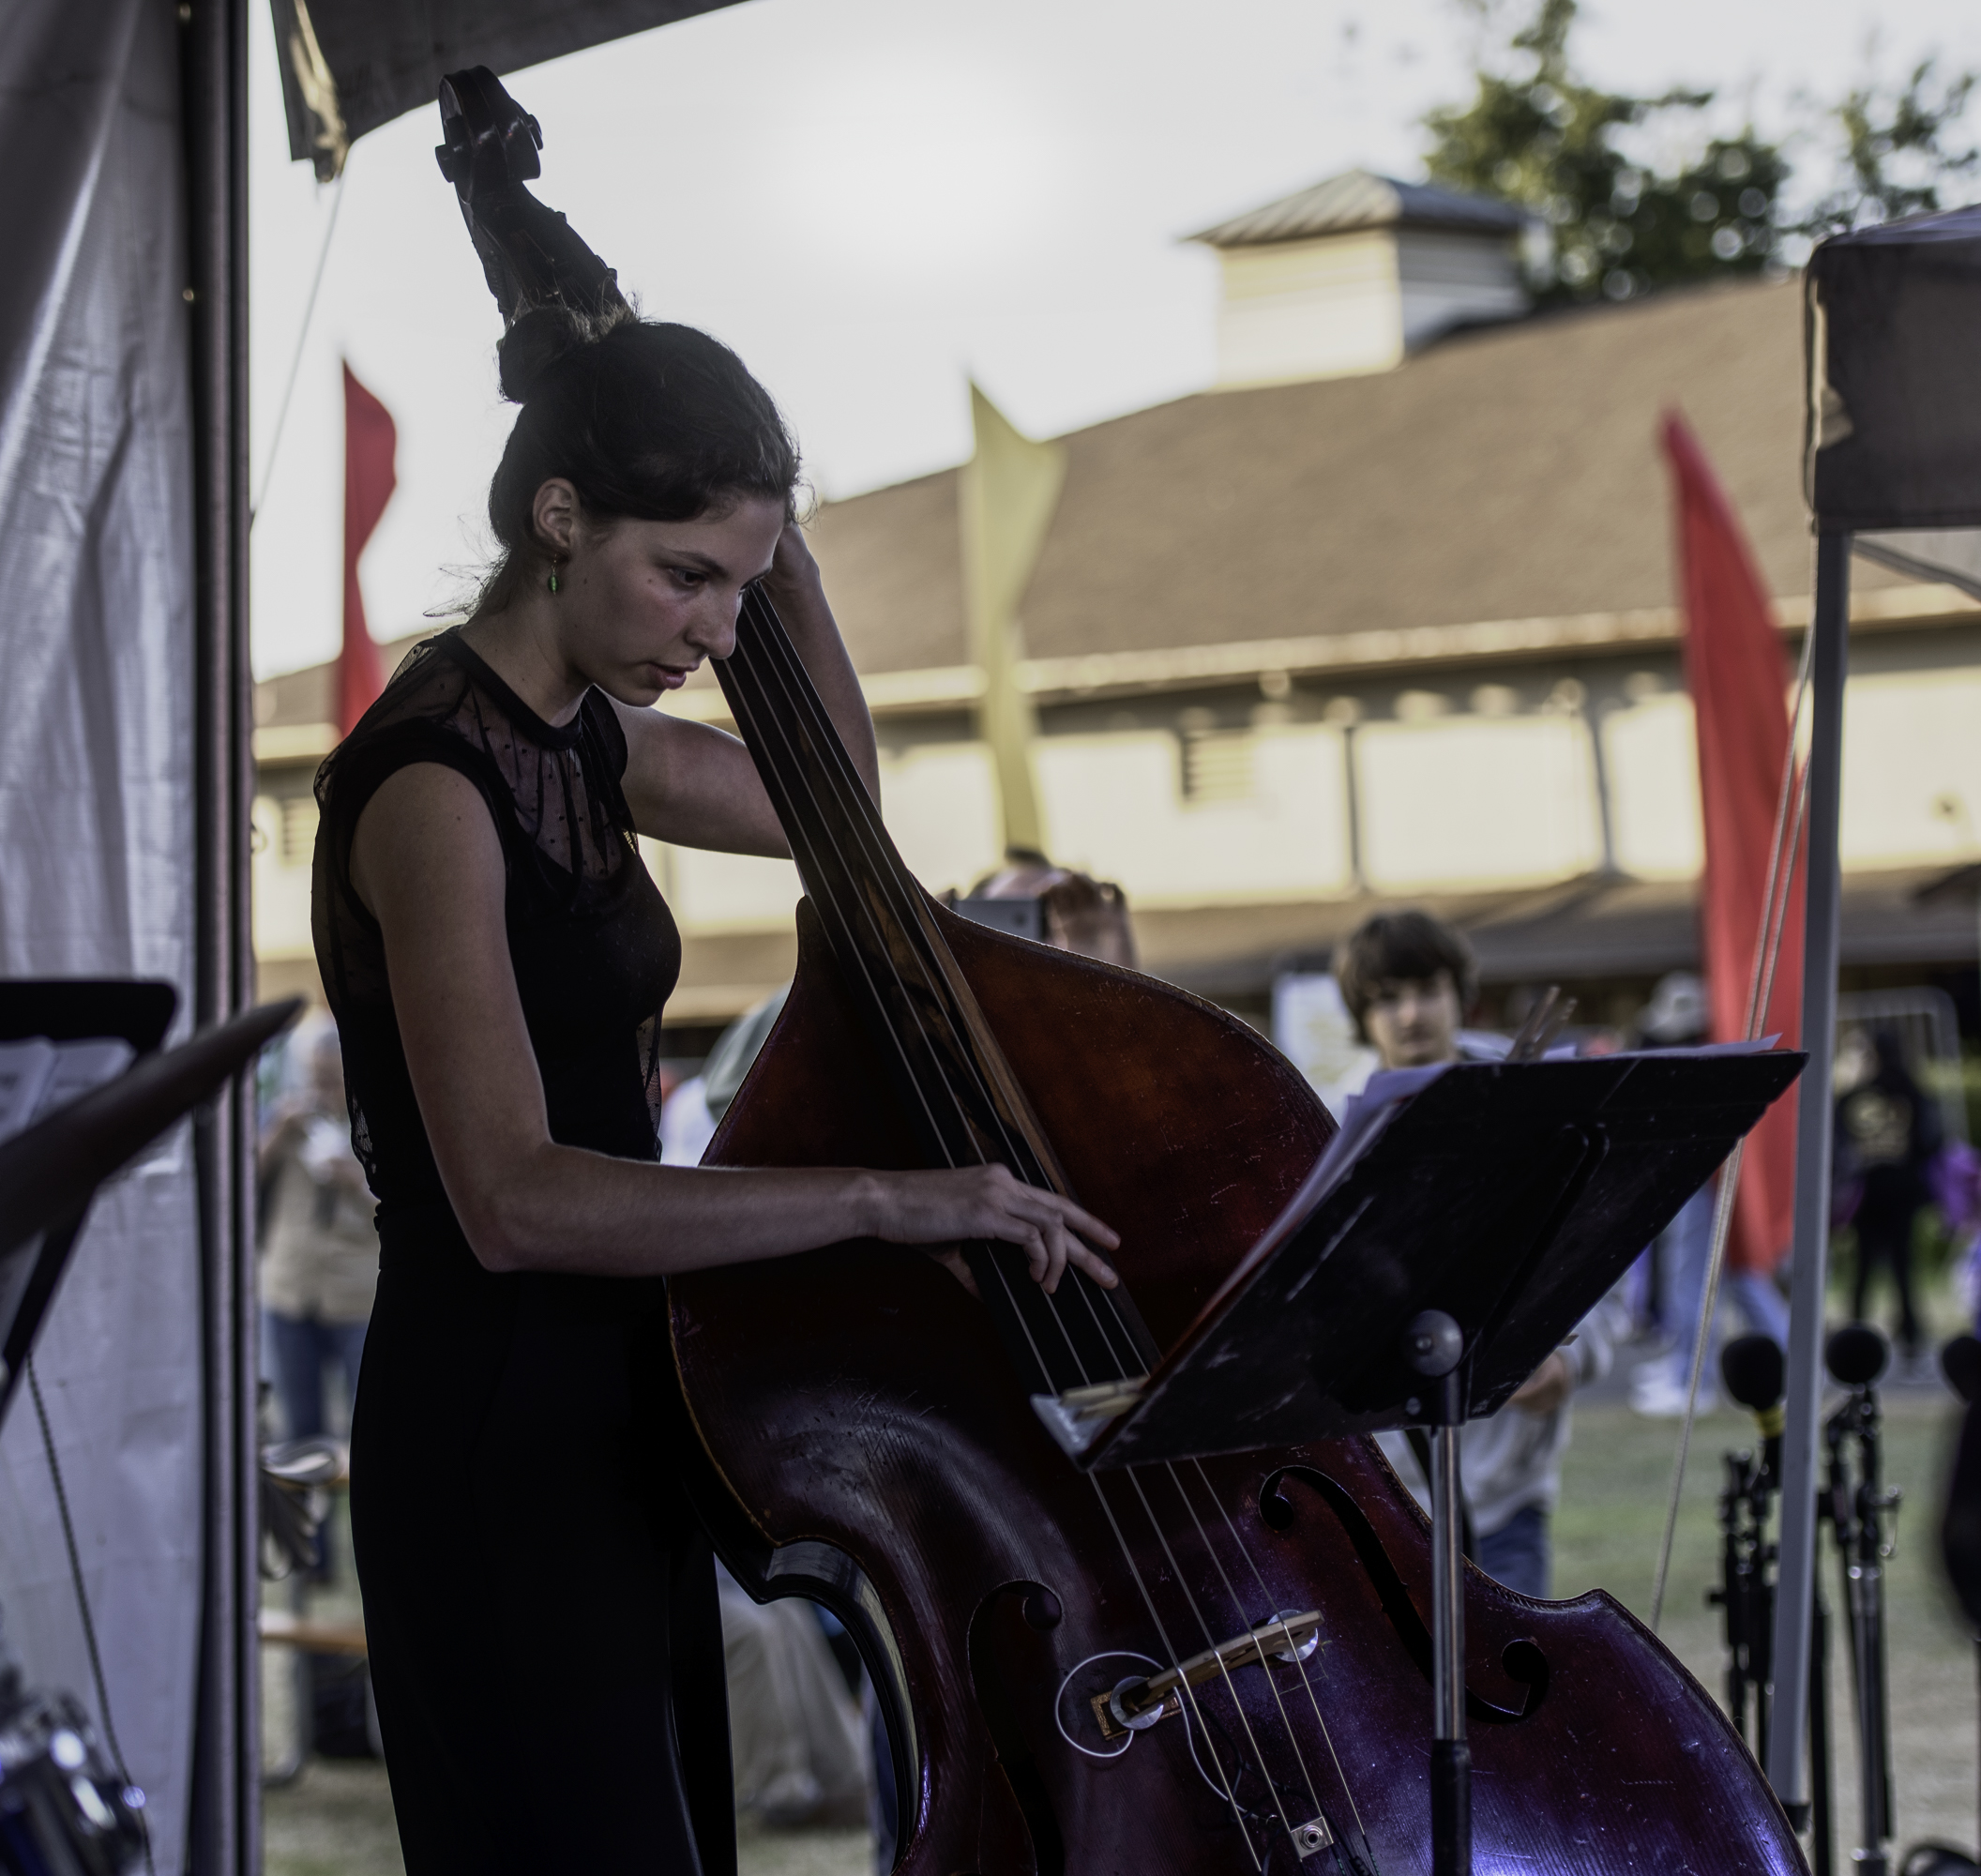 Anna Abondolo with the Next Generation Jazz Orchestra at the Monterey Jazz Festival